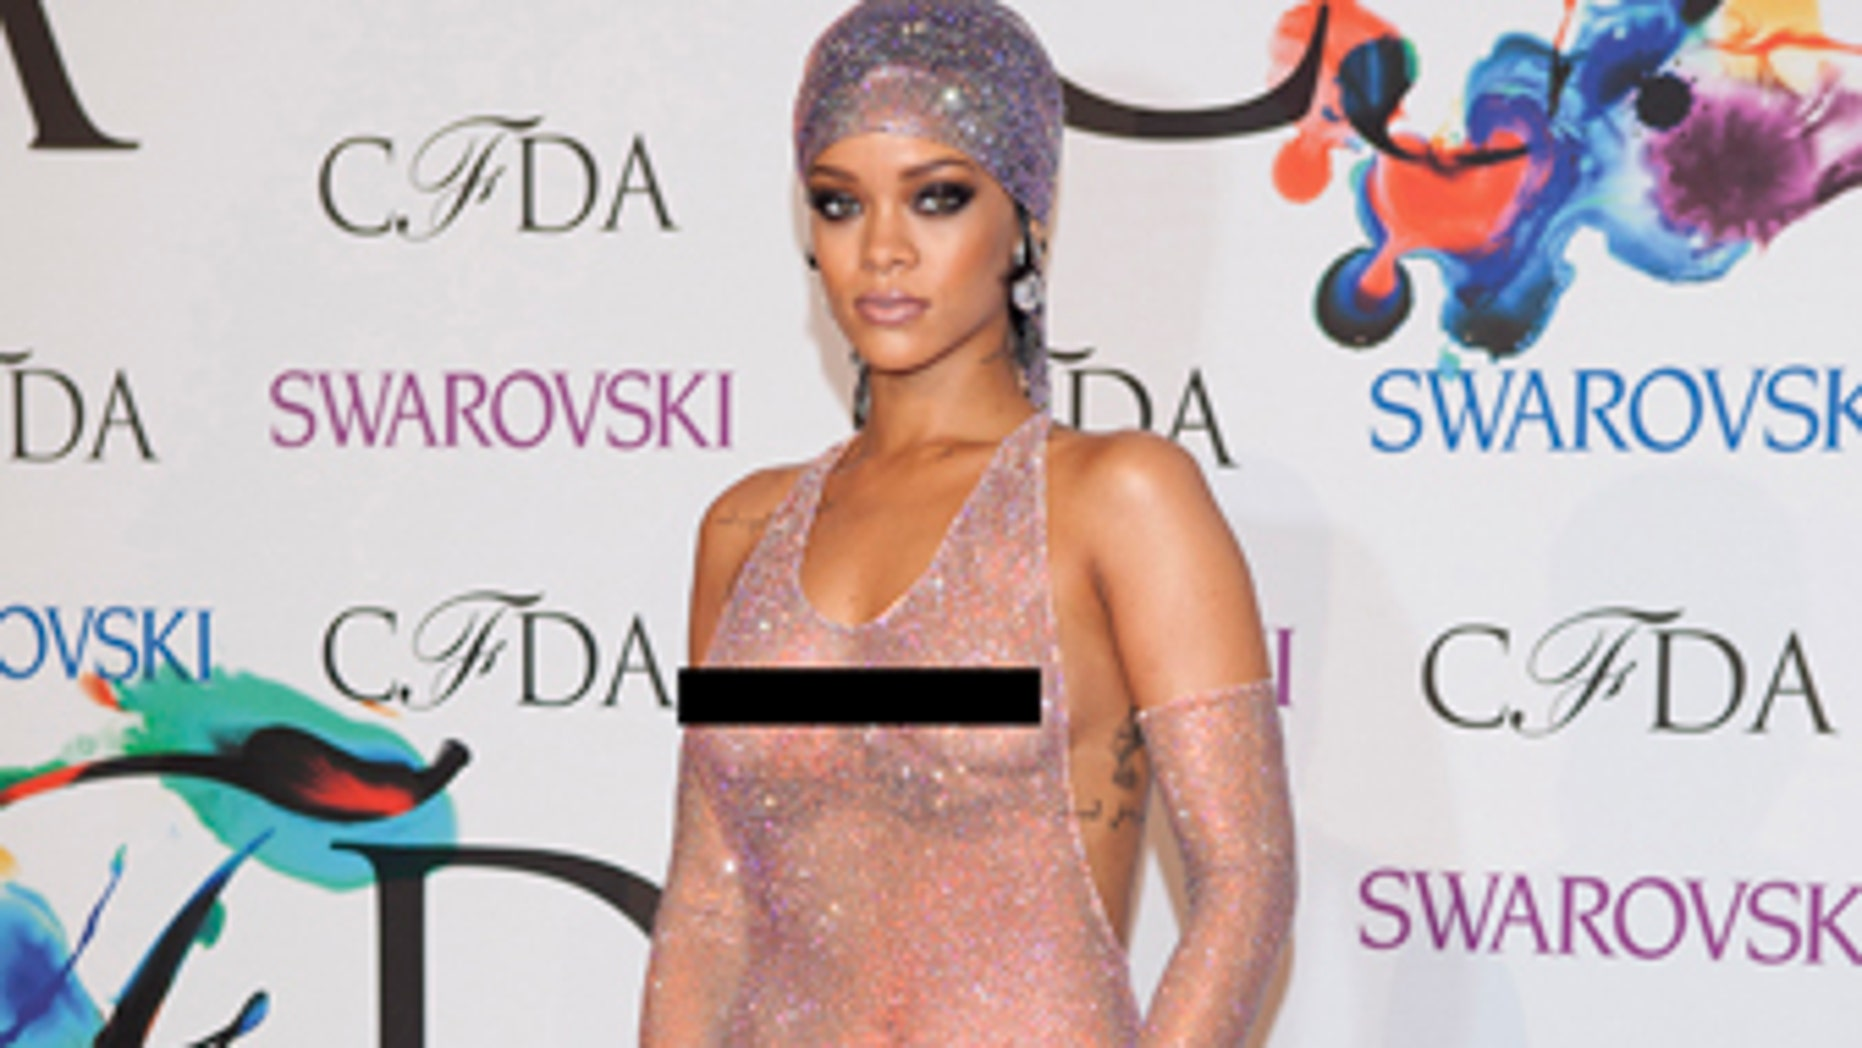 Singer Rihanna arrives for the Council of Fashion Designers of America (CFDA) Awards at Lincoln Center in New York June 2, 2014.